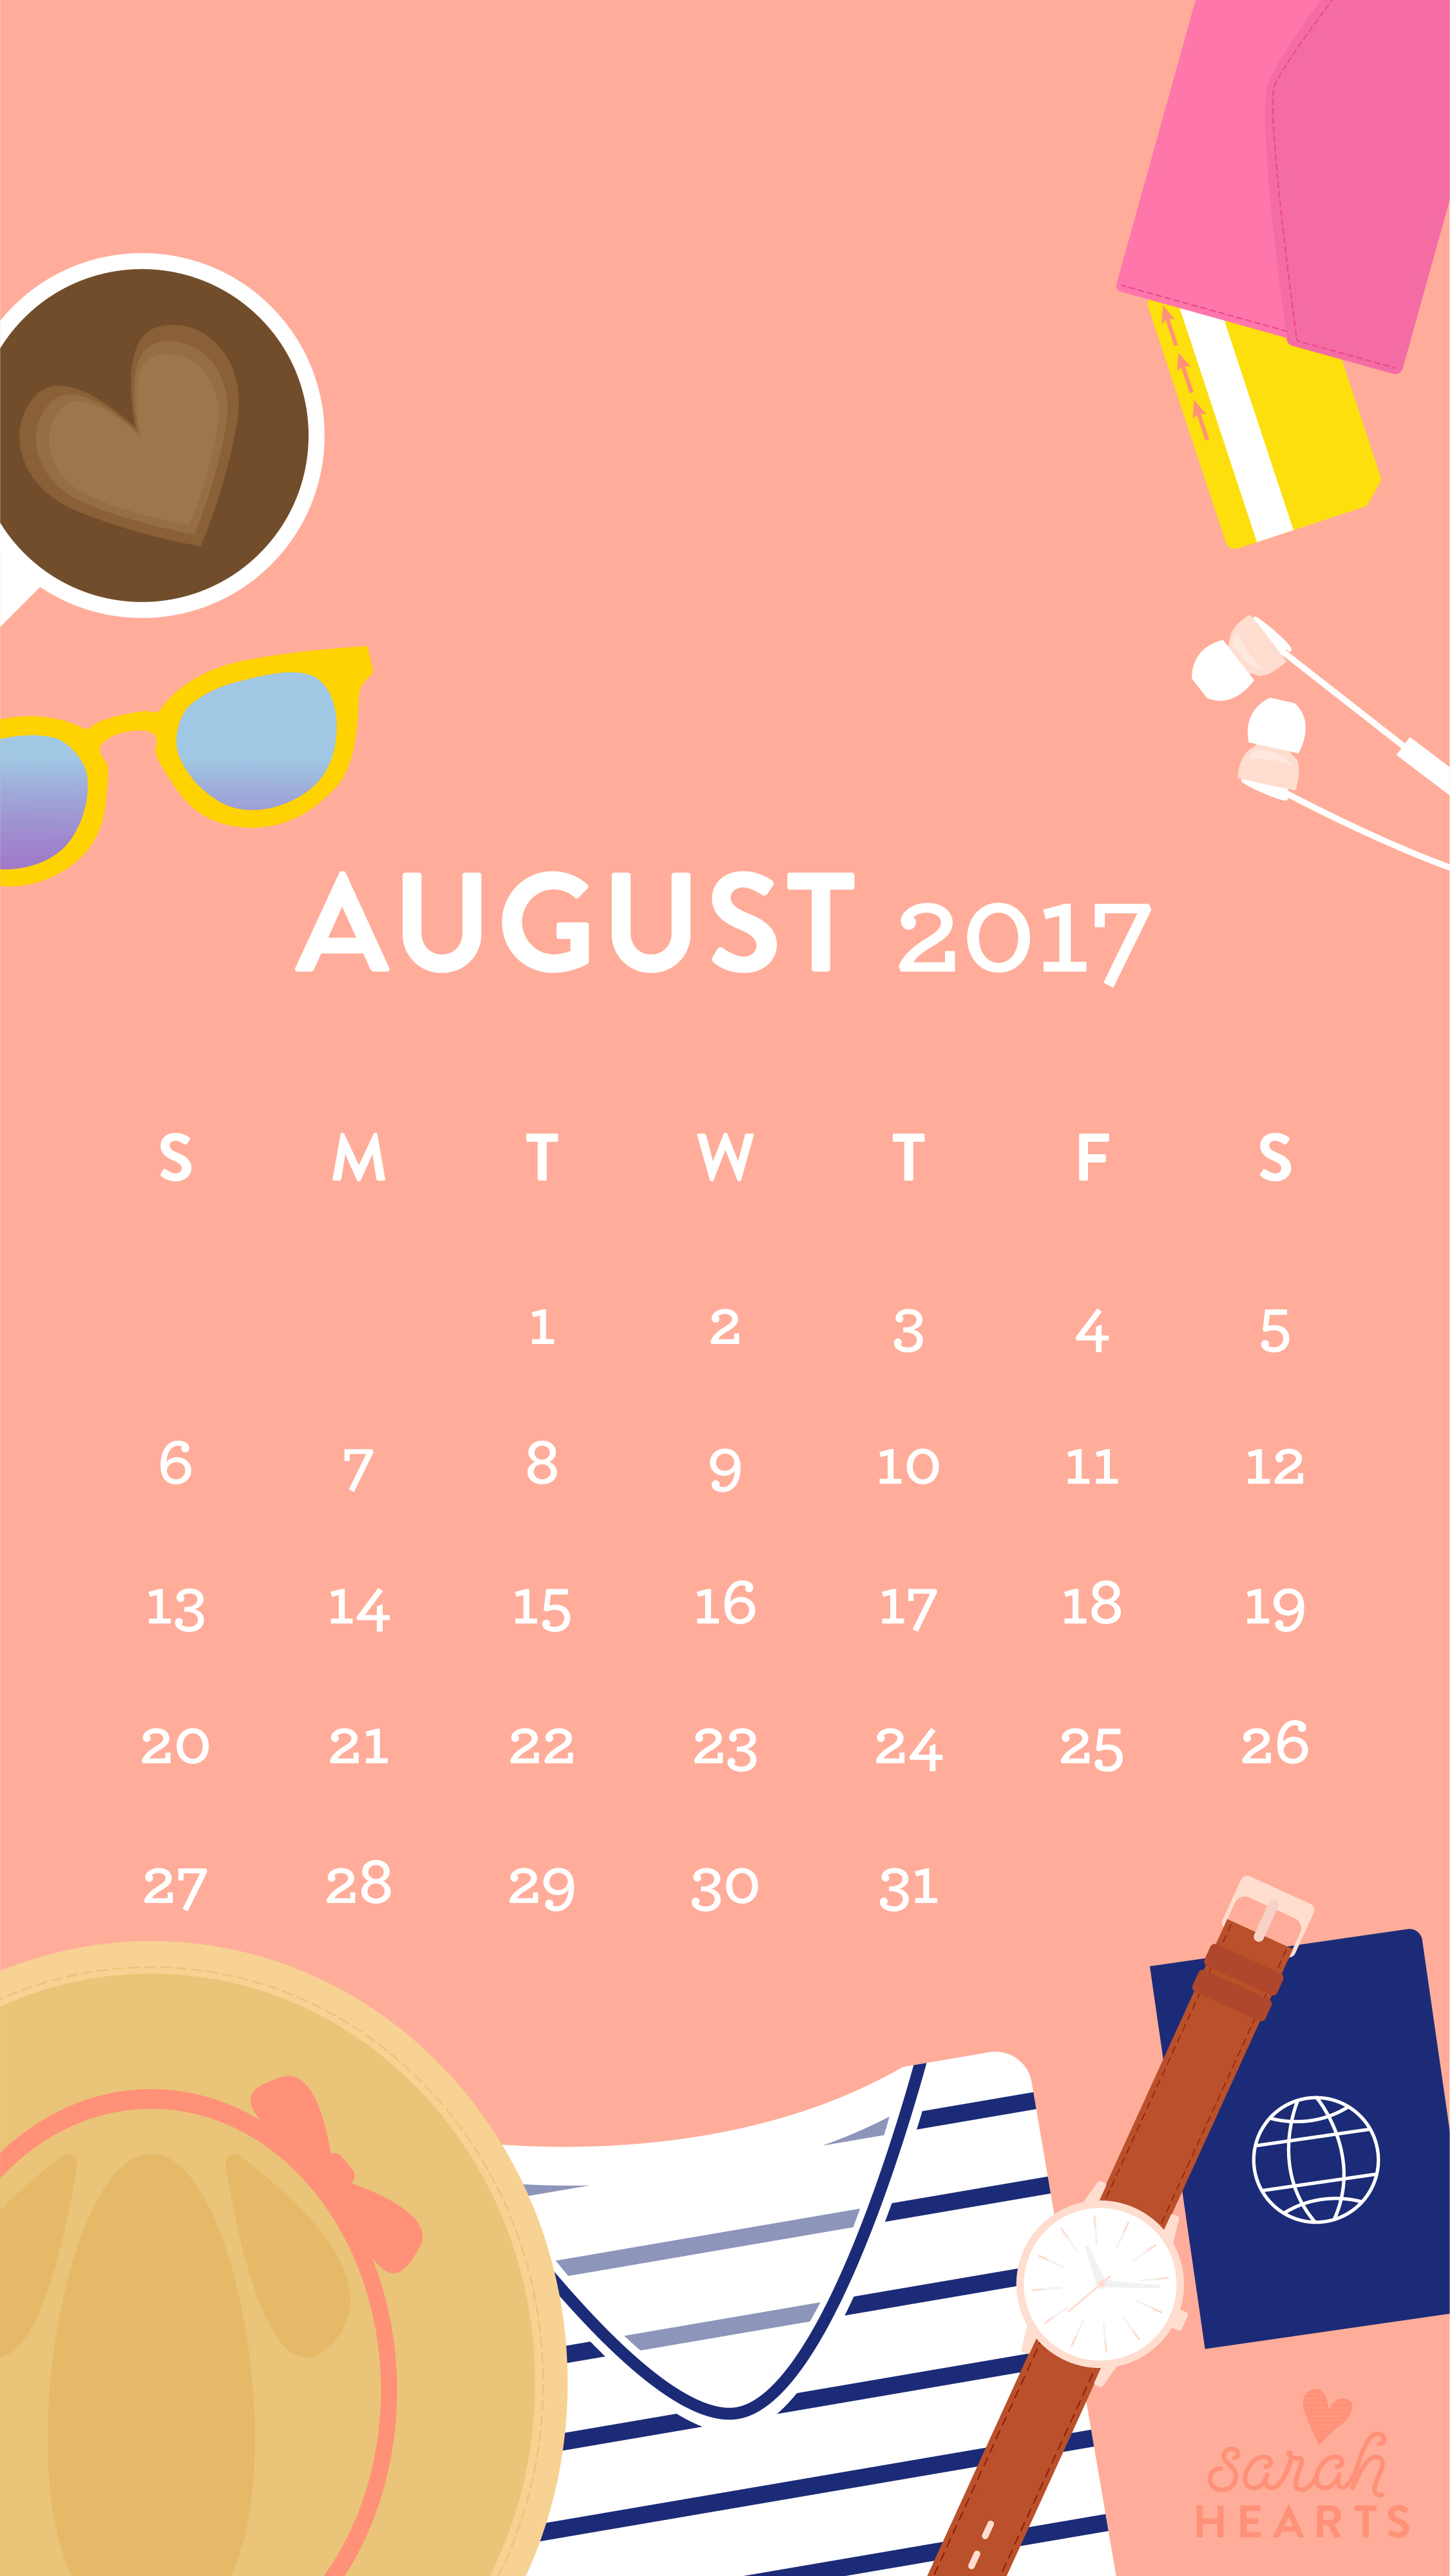 Pretty Wallpapers Rose Quotes August 2017 Travel Calendar Wallpaper Sarah Hearts